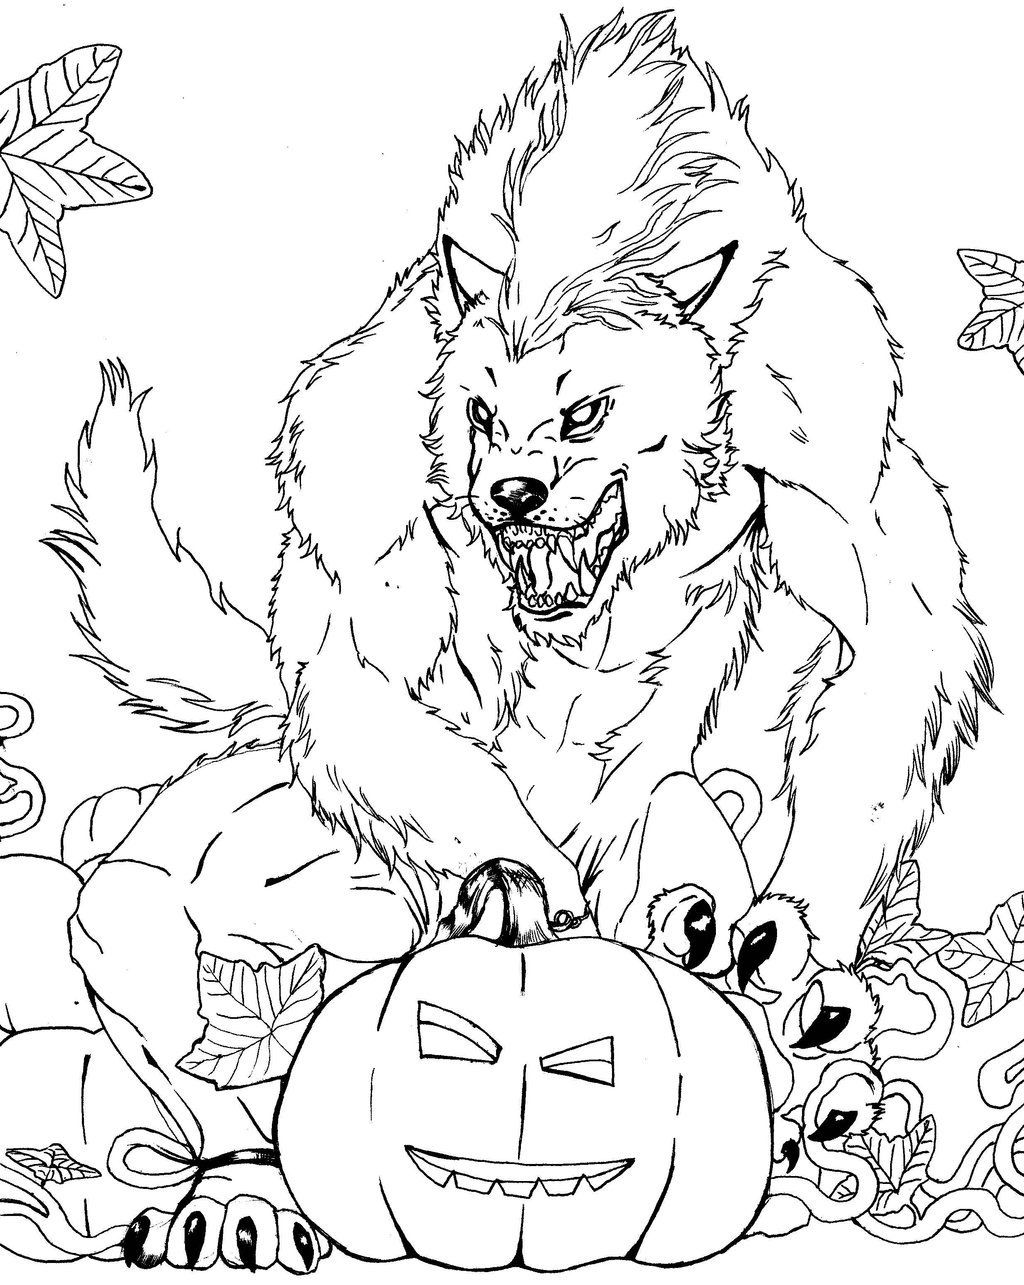 werewolf coloring pages print halloween coloring pages werewolf or - Halloween Werewolf Coloring Pages